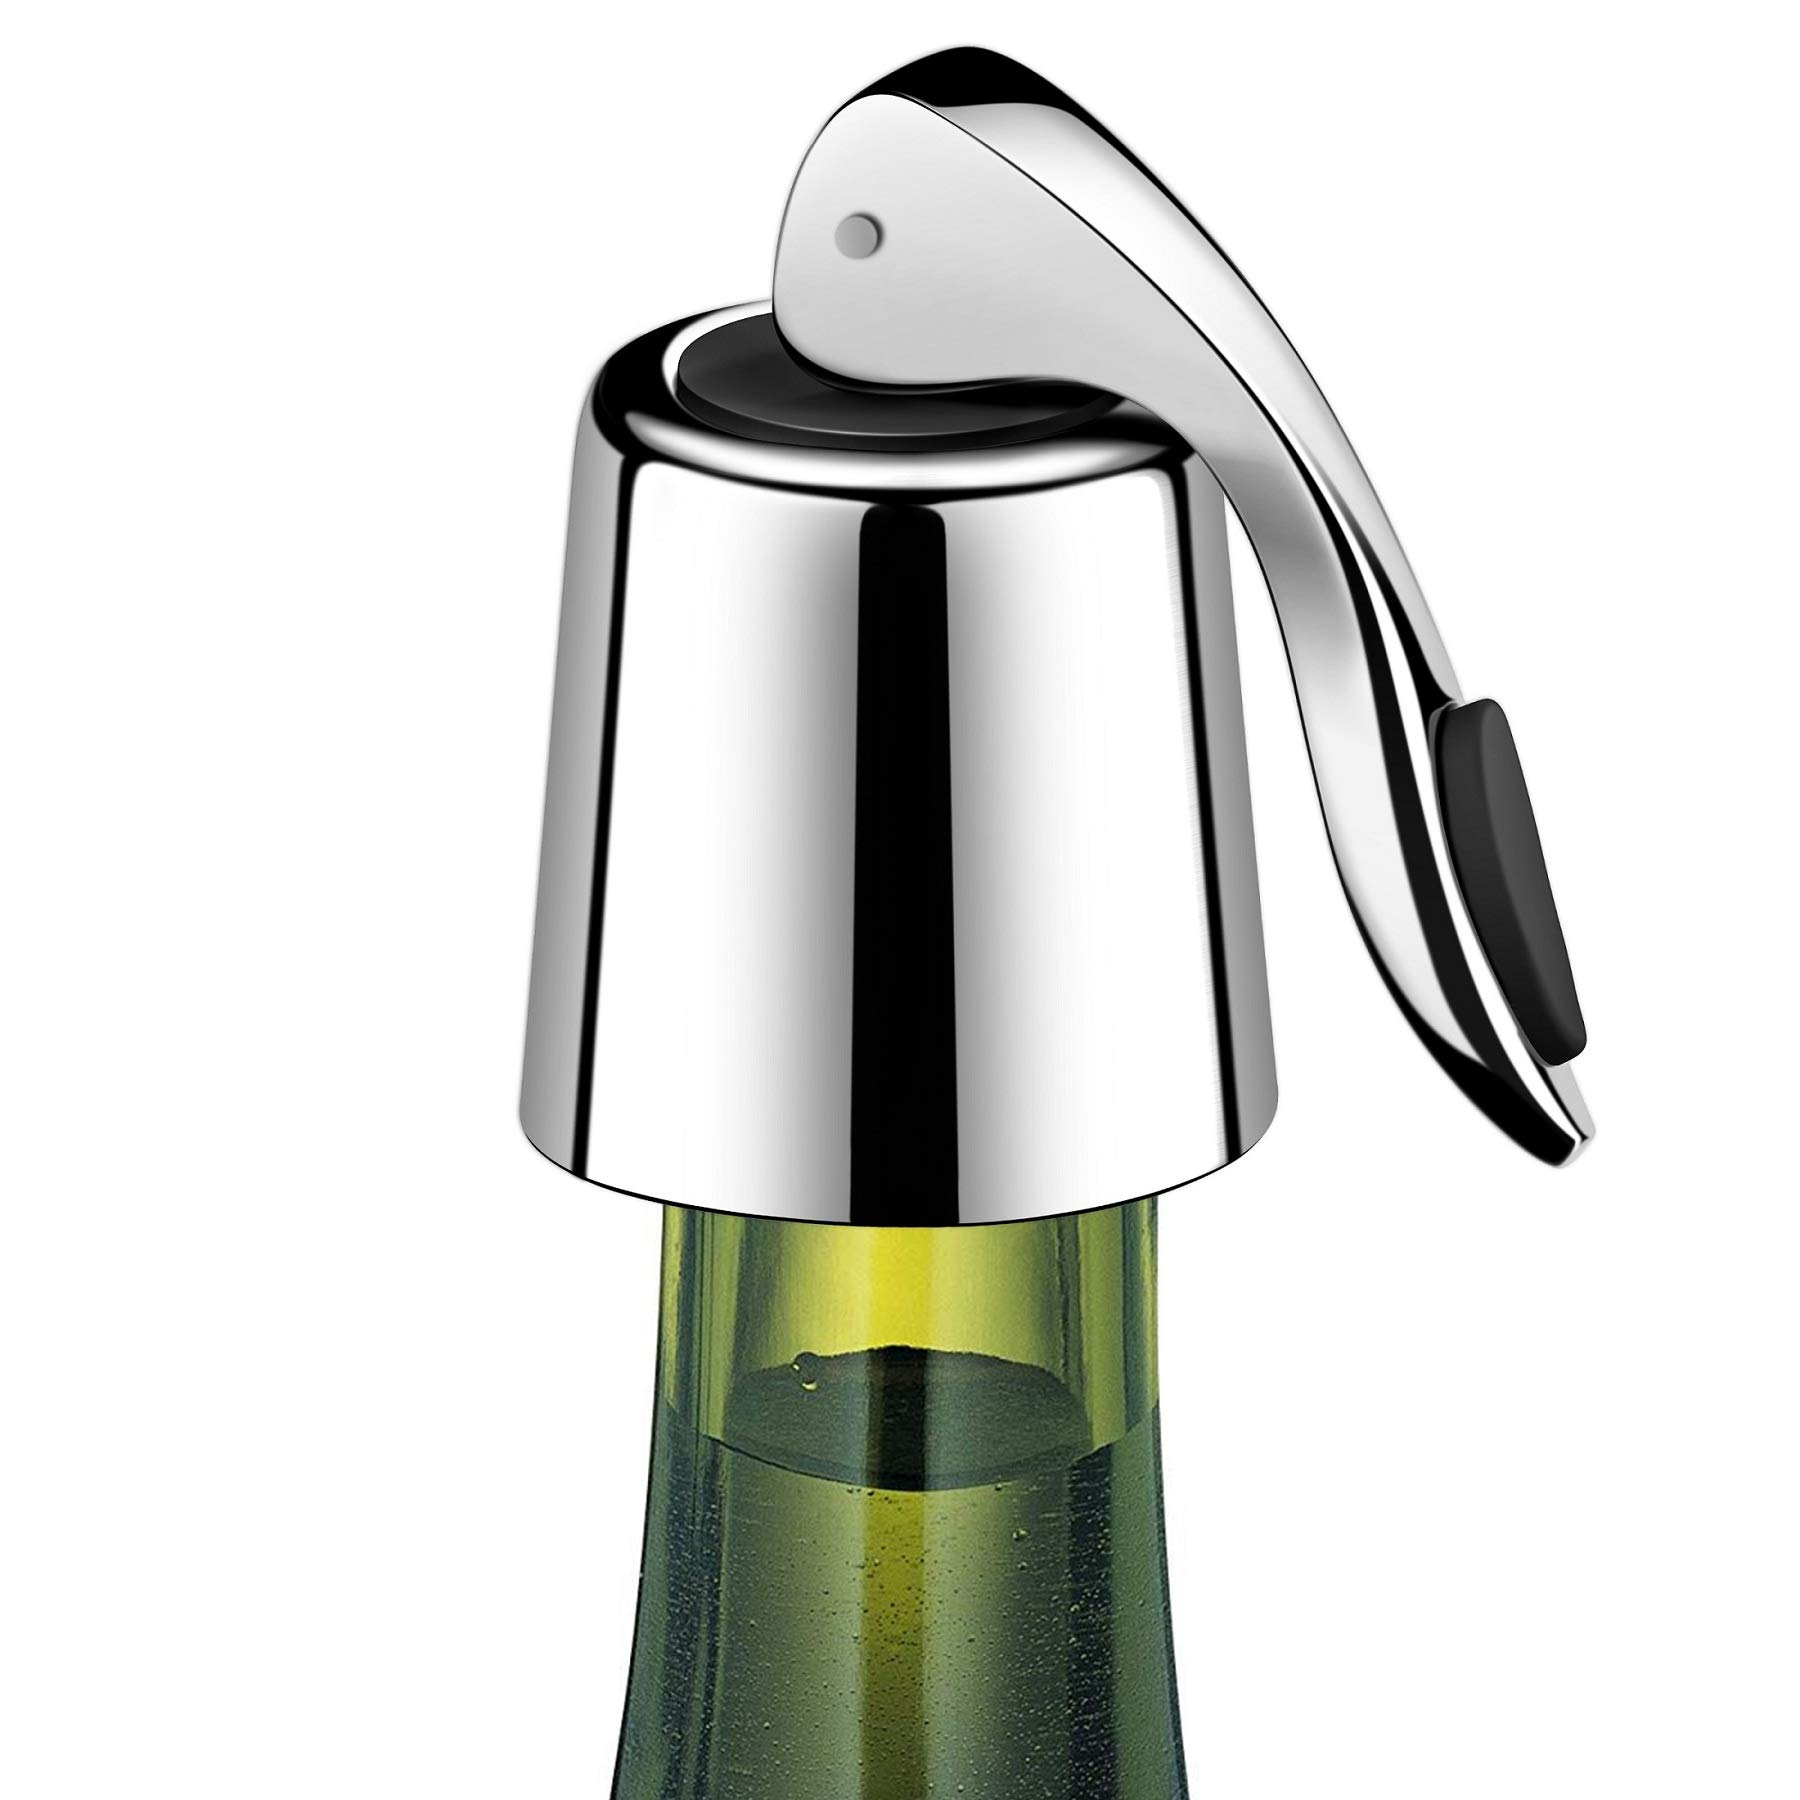 ERHIRY Wine Bottle Stopper Stainless Steel, Wine Bottle Plug, Expanding Beverage Bottle Stopper, Reusable Wine Saver, Bottle Sealer Keeps Wine Fresh, Best Gift Accessories